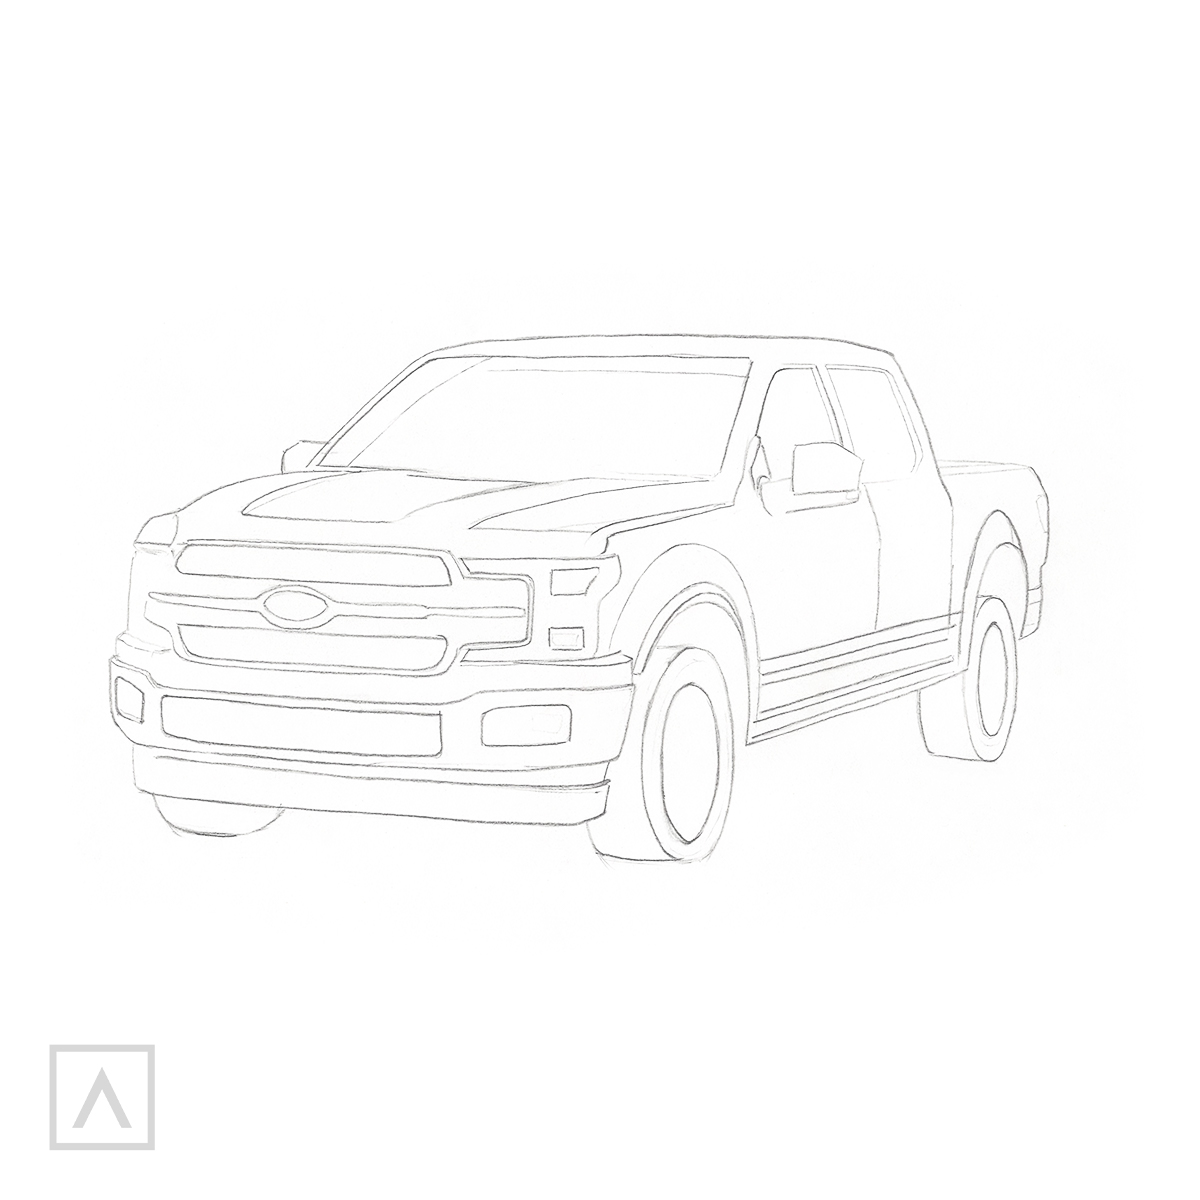 How to Draw a Car - Step 8